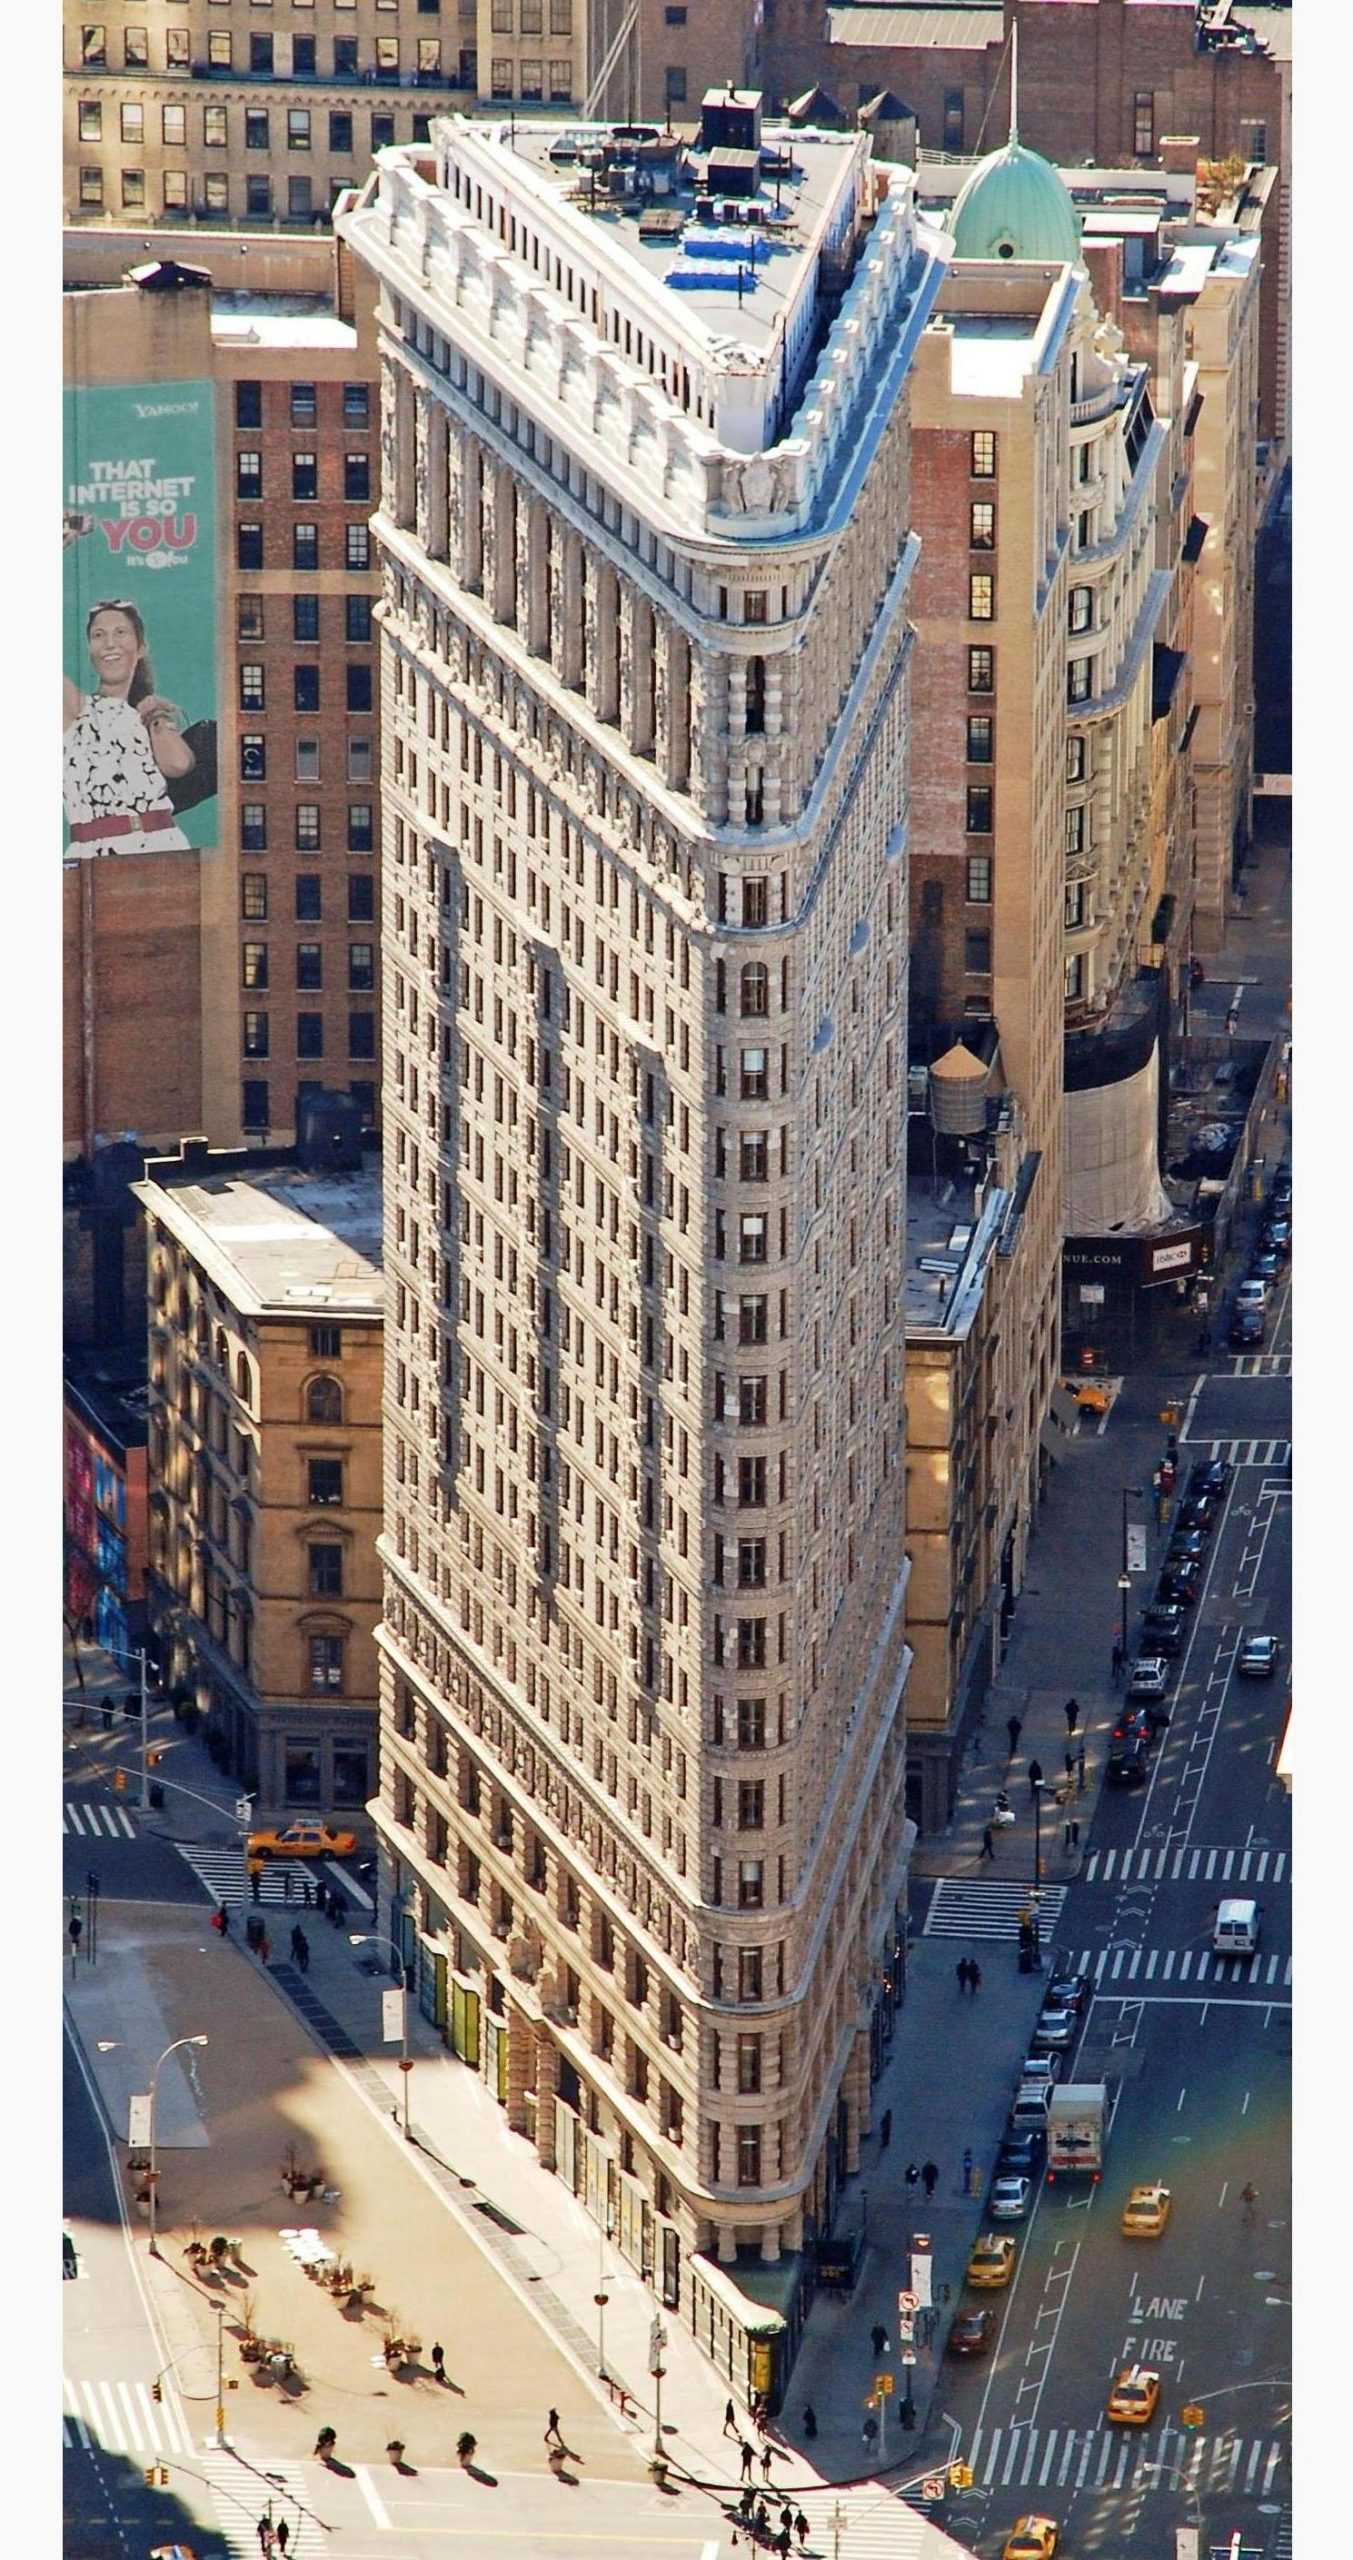 Aerial view of the Flatiron Building, facing south toward the building's pointed facade